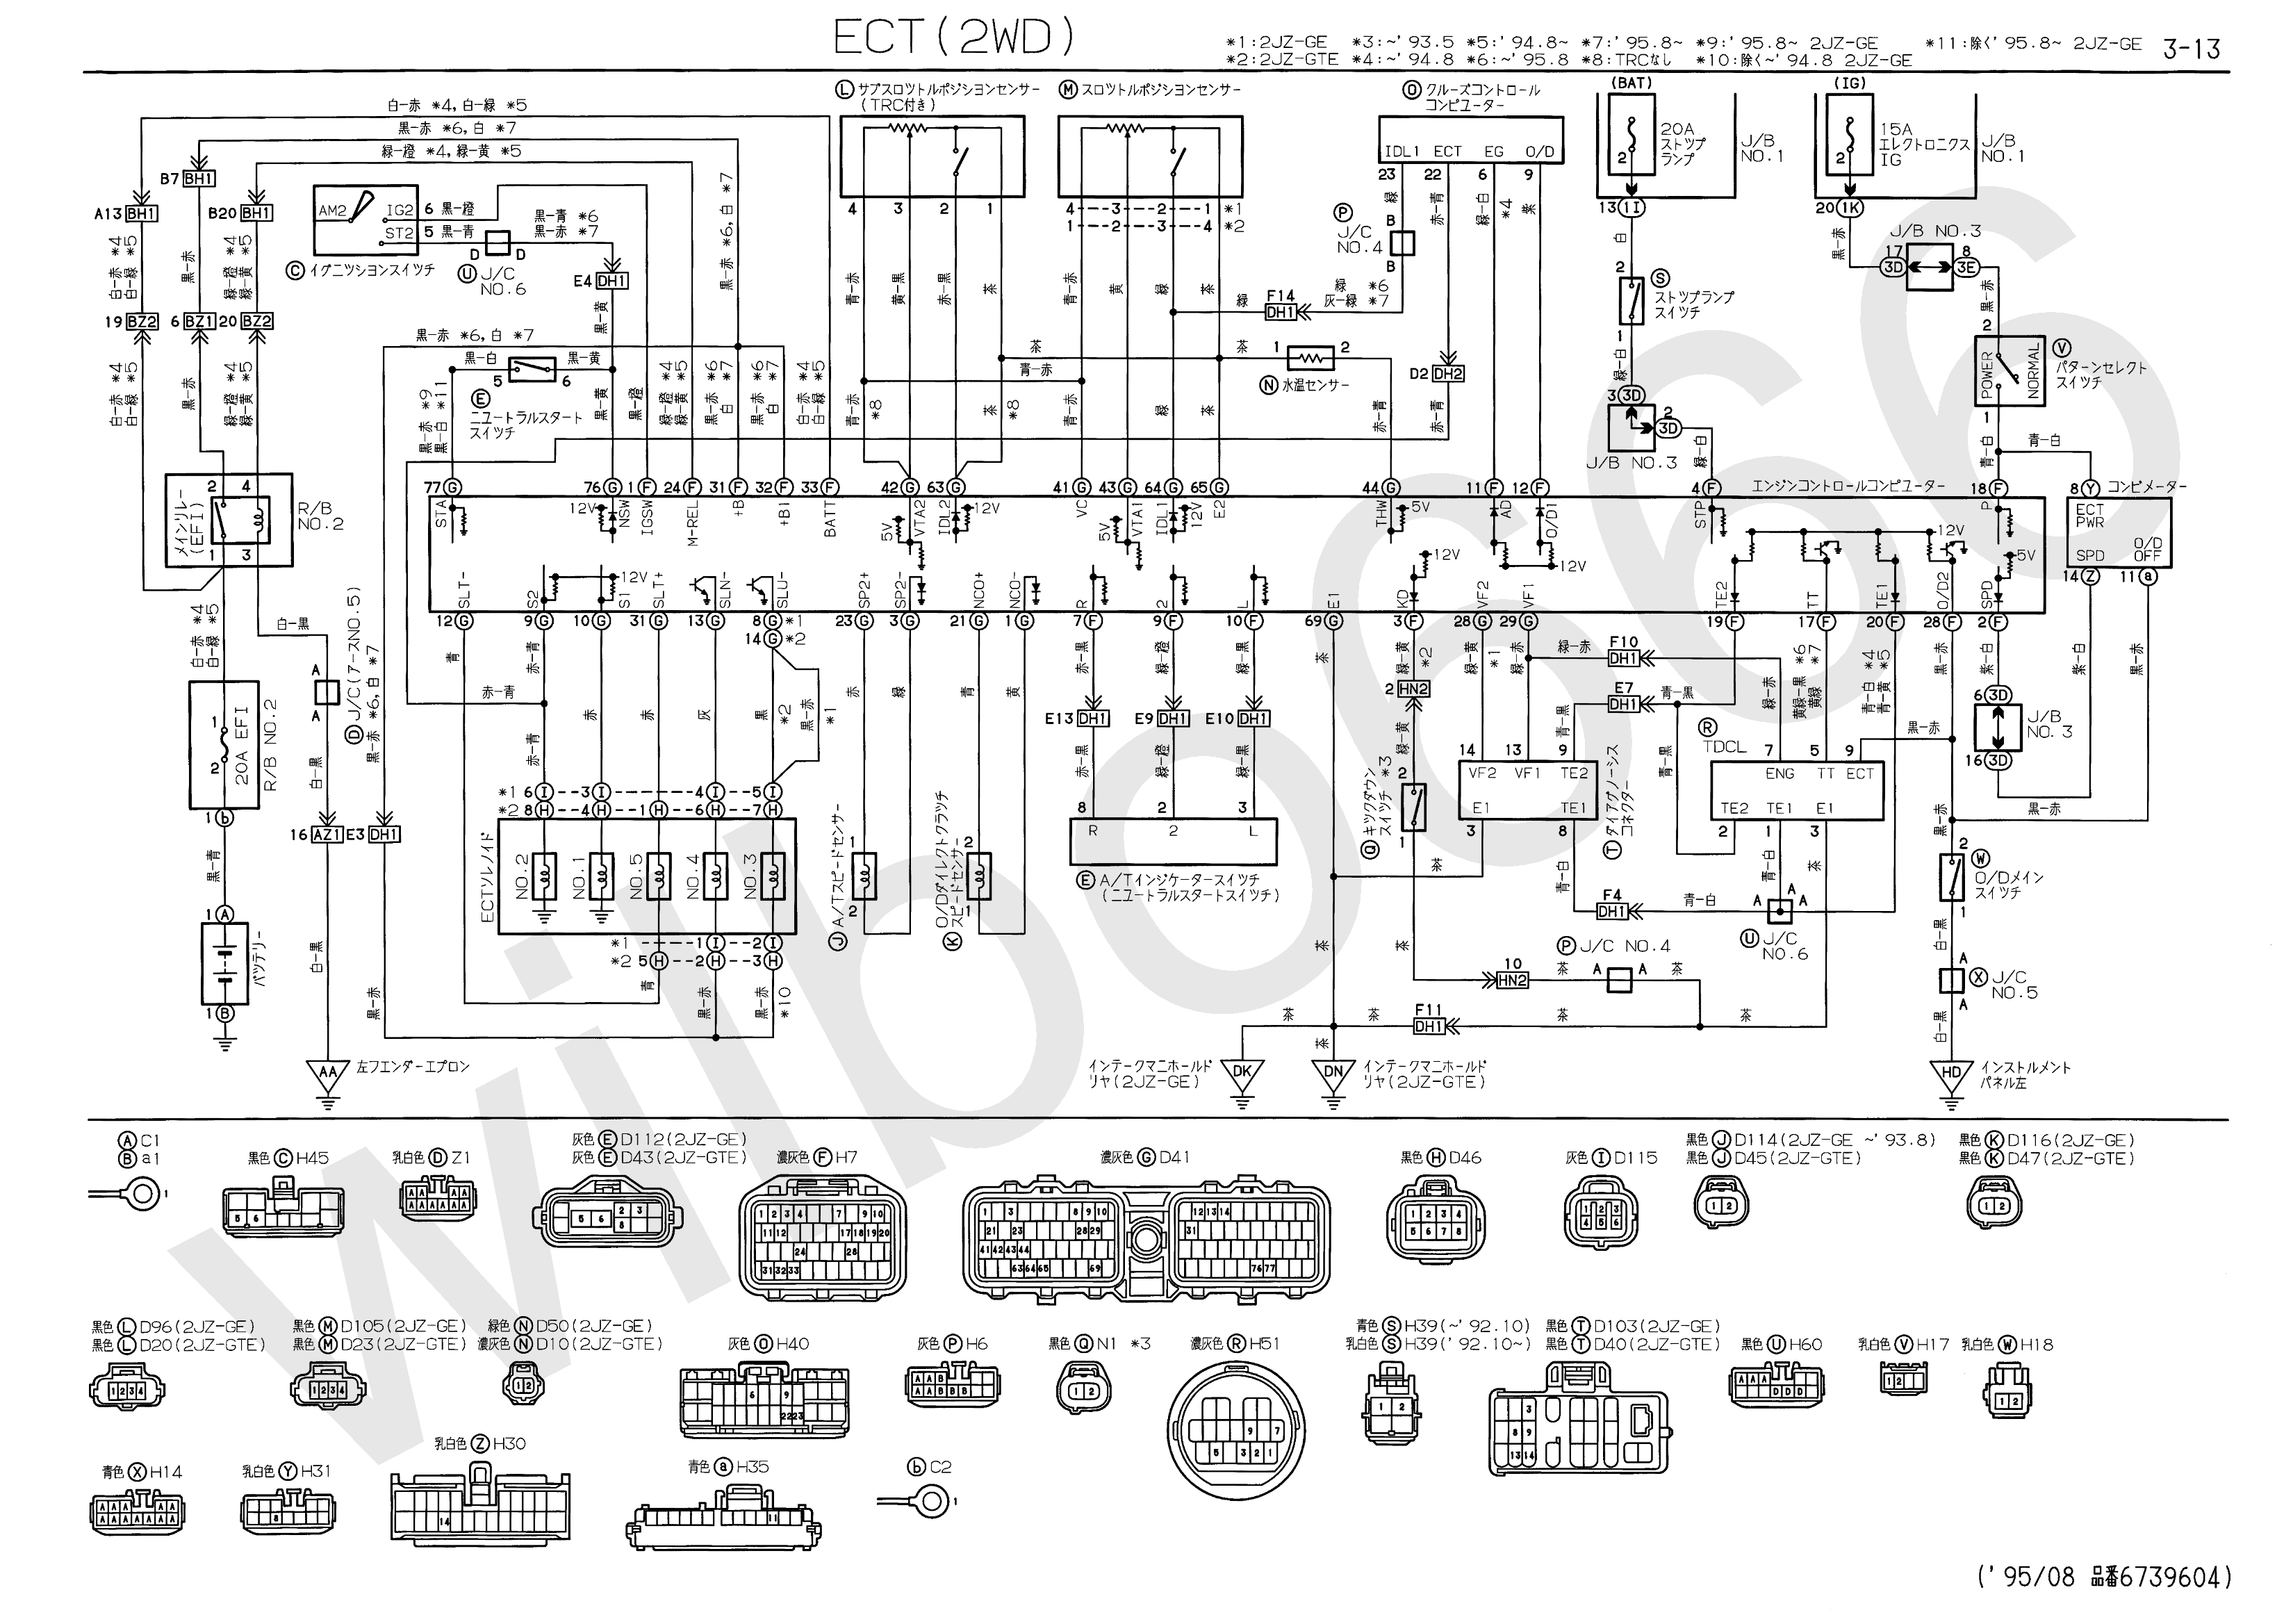 wiring diagram toyota wiring image wiring diagram toyota electrical wiring diagrams toyota wiring diagrams on wiring diagram toyota